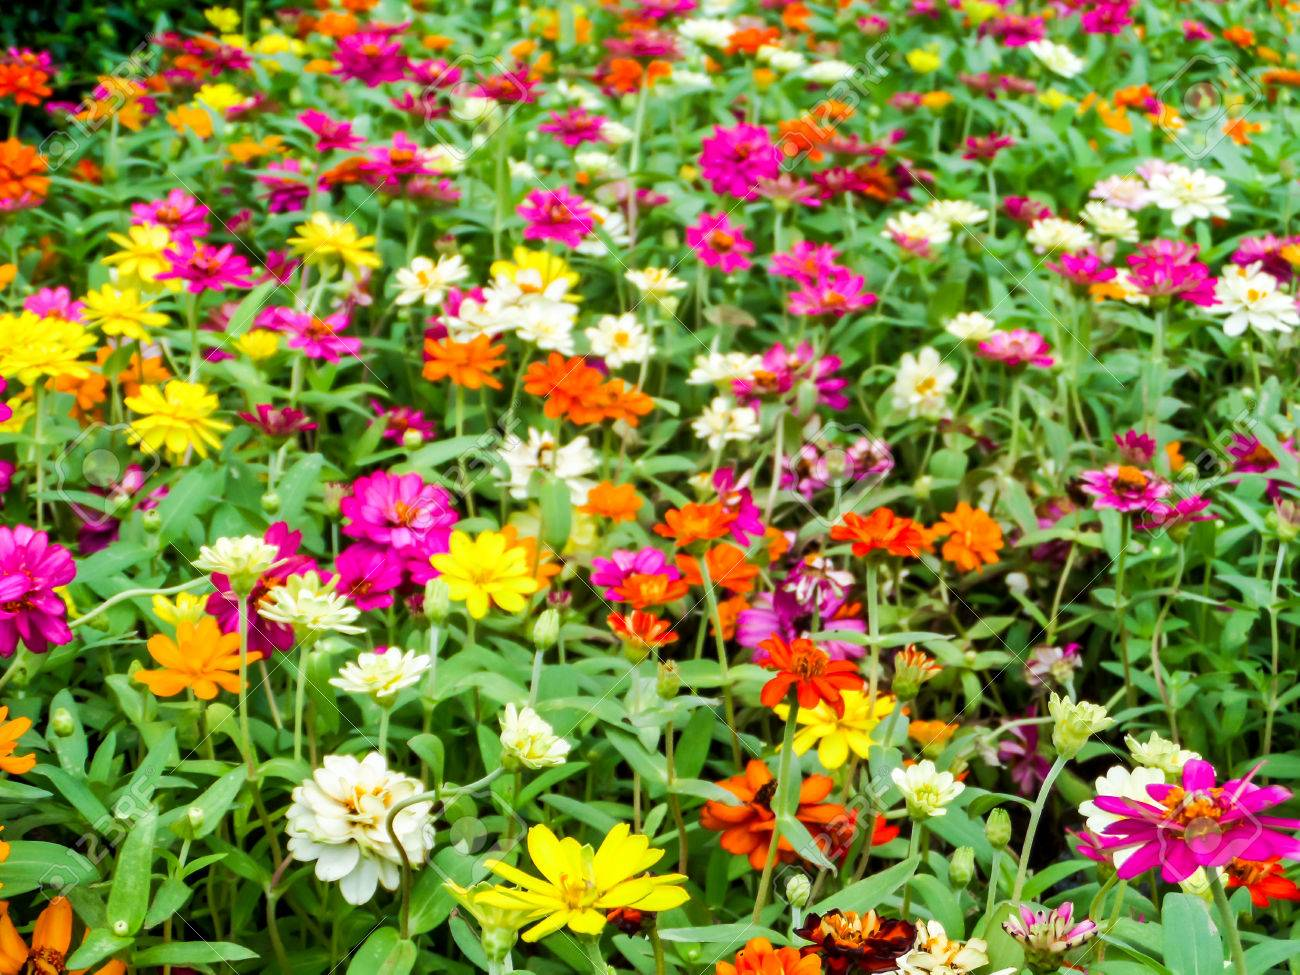 The Zinnia Flower Is One Of The Most Exuberant Flowers You Will